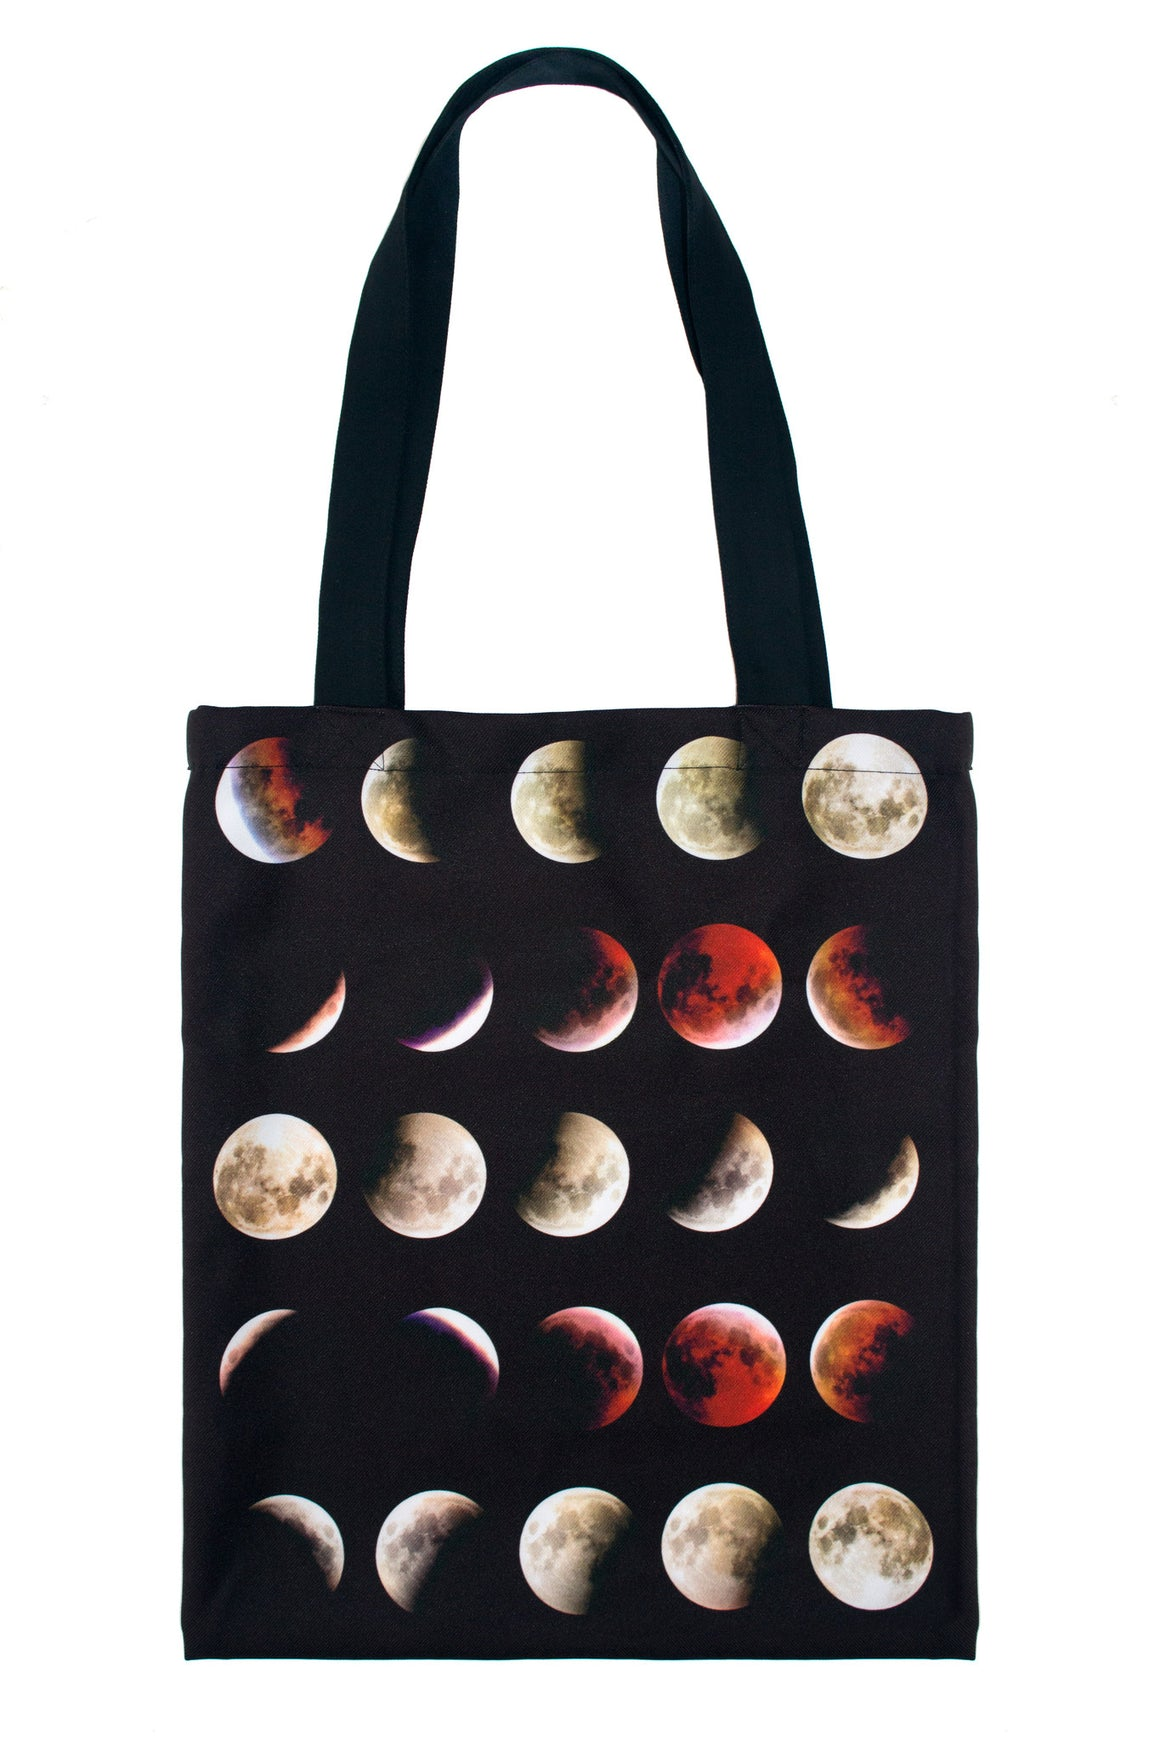 Blood Moon Phase Tote, Shadowplay New York